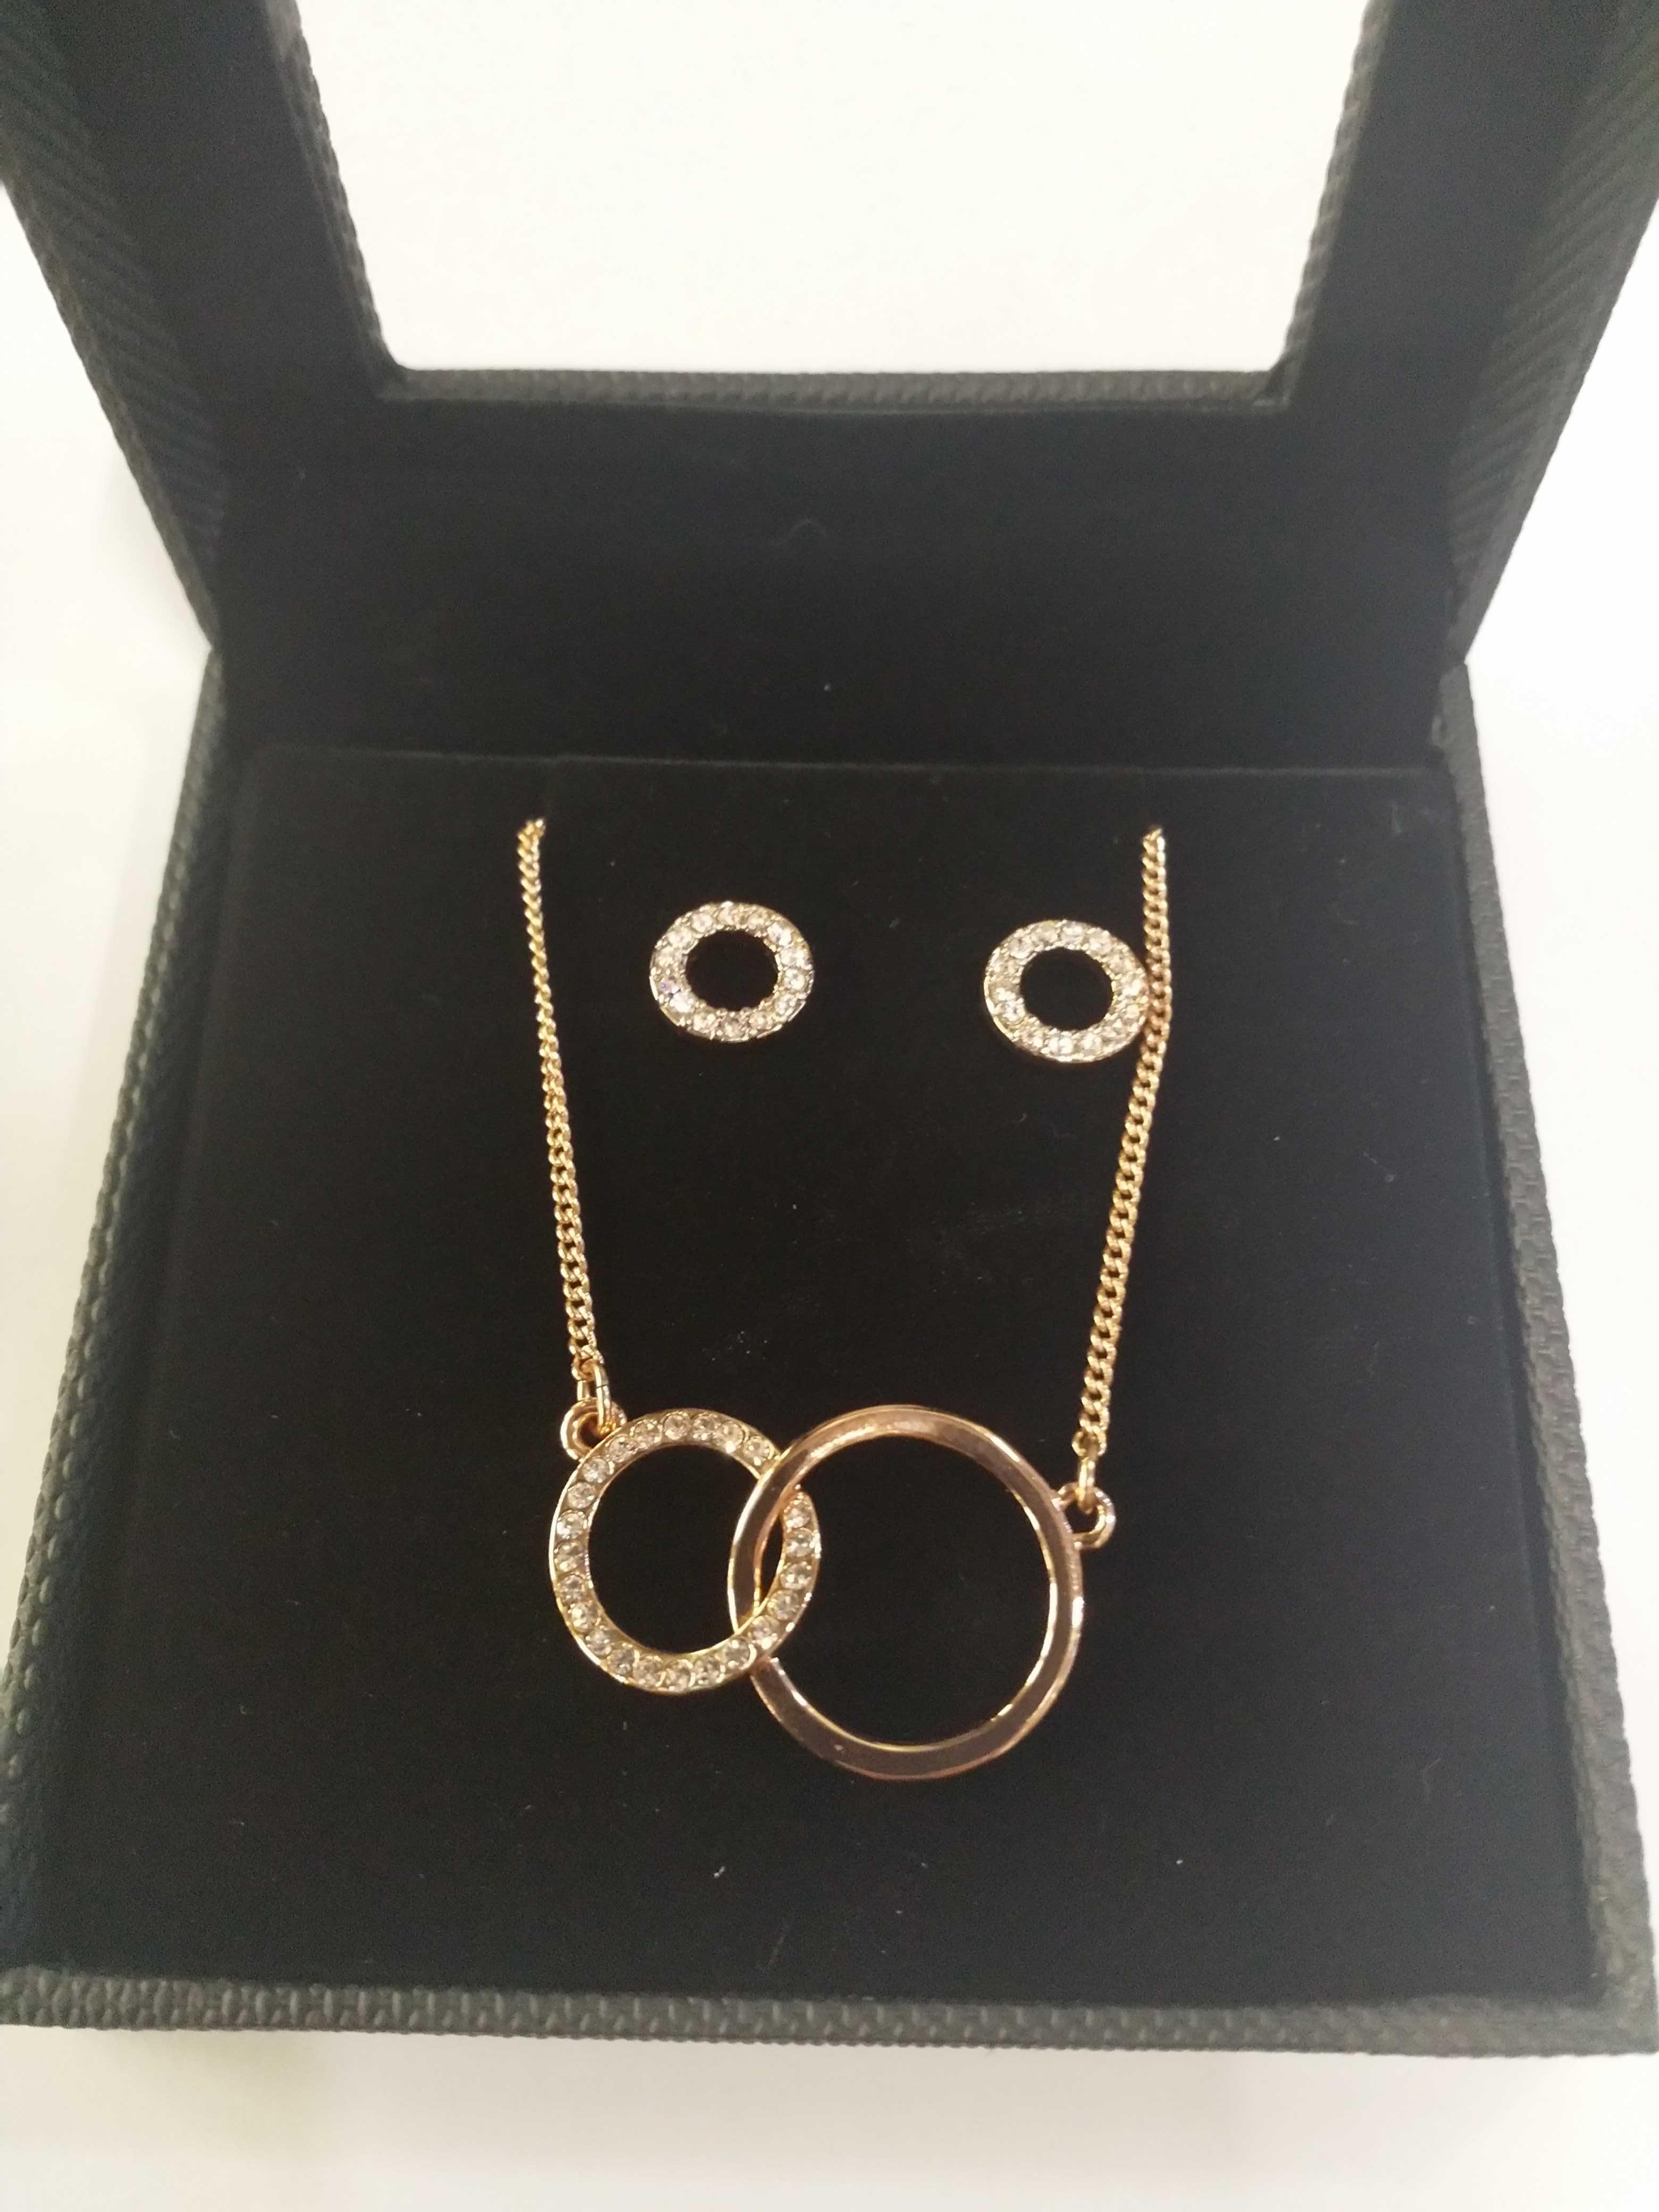 Lot 14 - 12 PILGRIM ROSE GOLD NECKLACE AND EARRING SET RRP £376.80